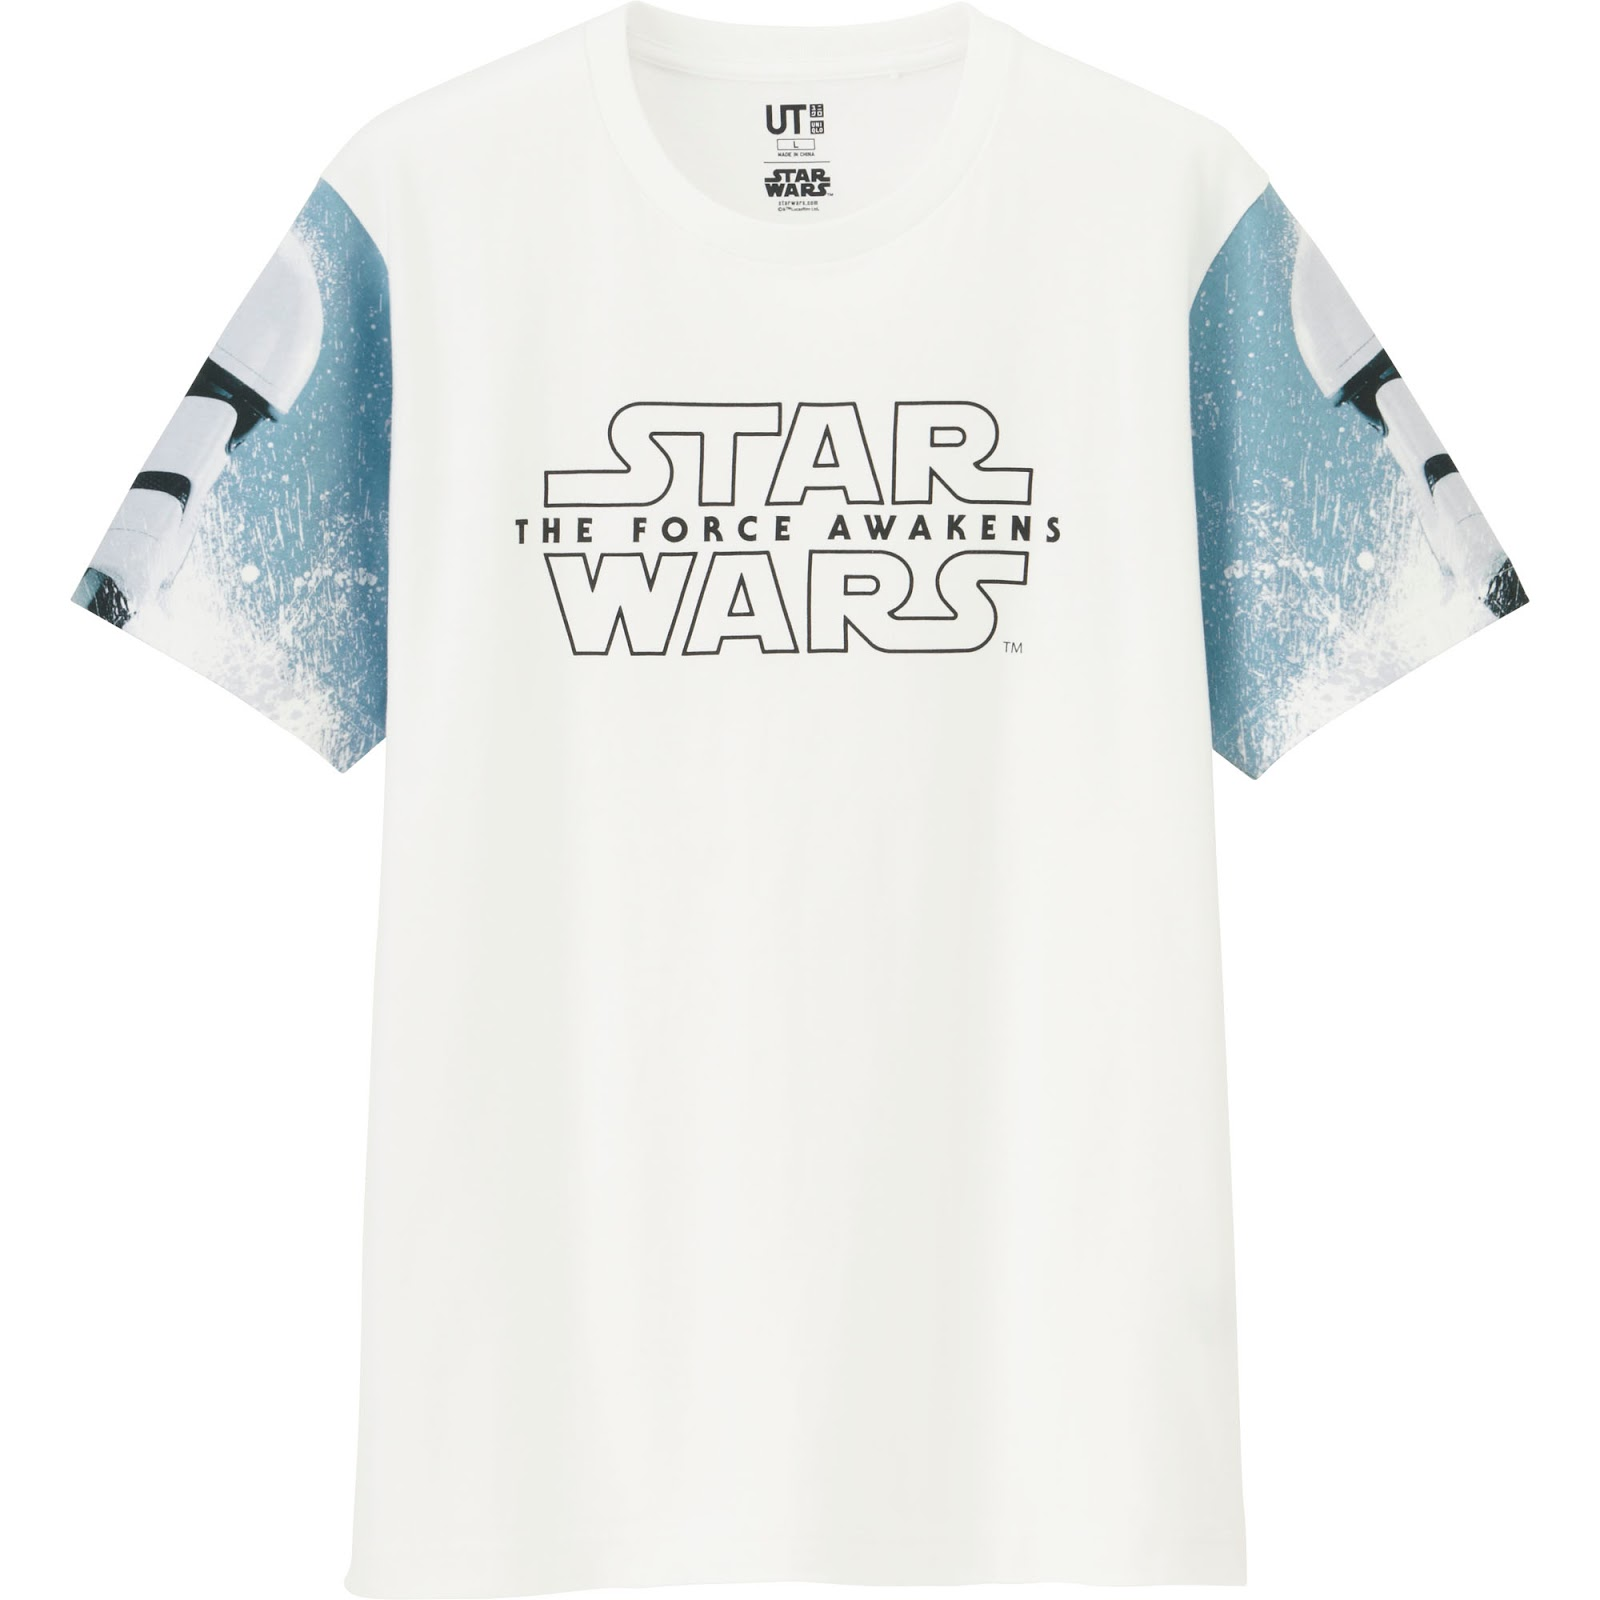 4b7053b14a3 Star Wars fans will surely love the new designs of the graphic t-shirts  which are made of high-quality materials. These are best paired with any  UNIQLO ...